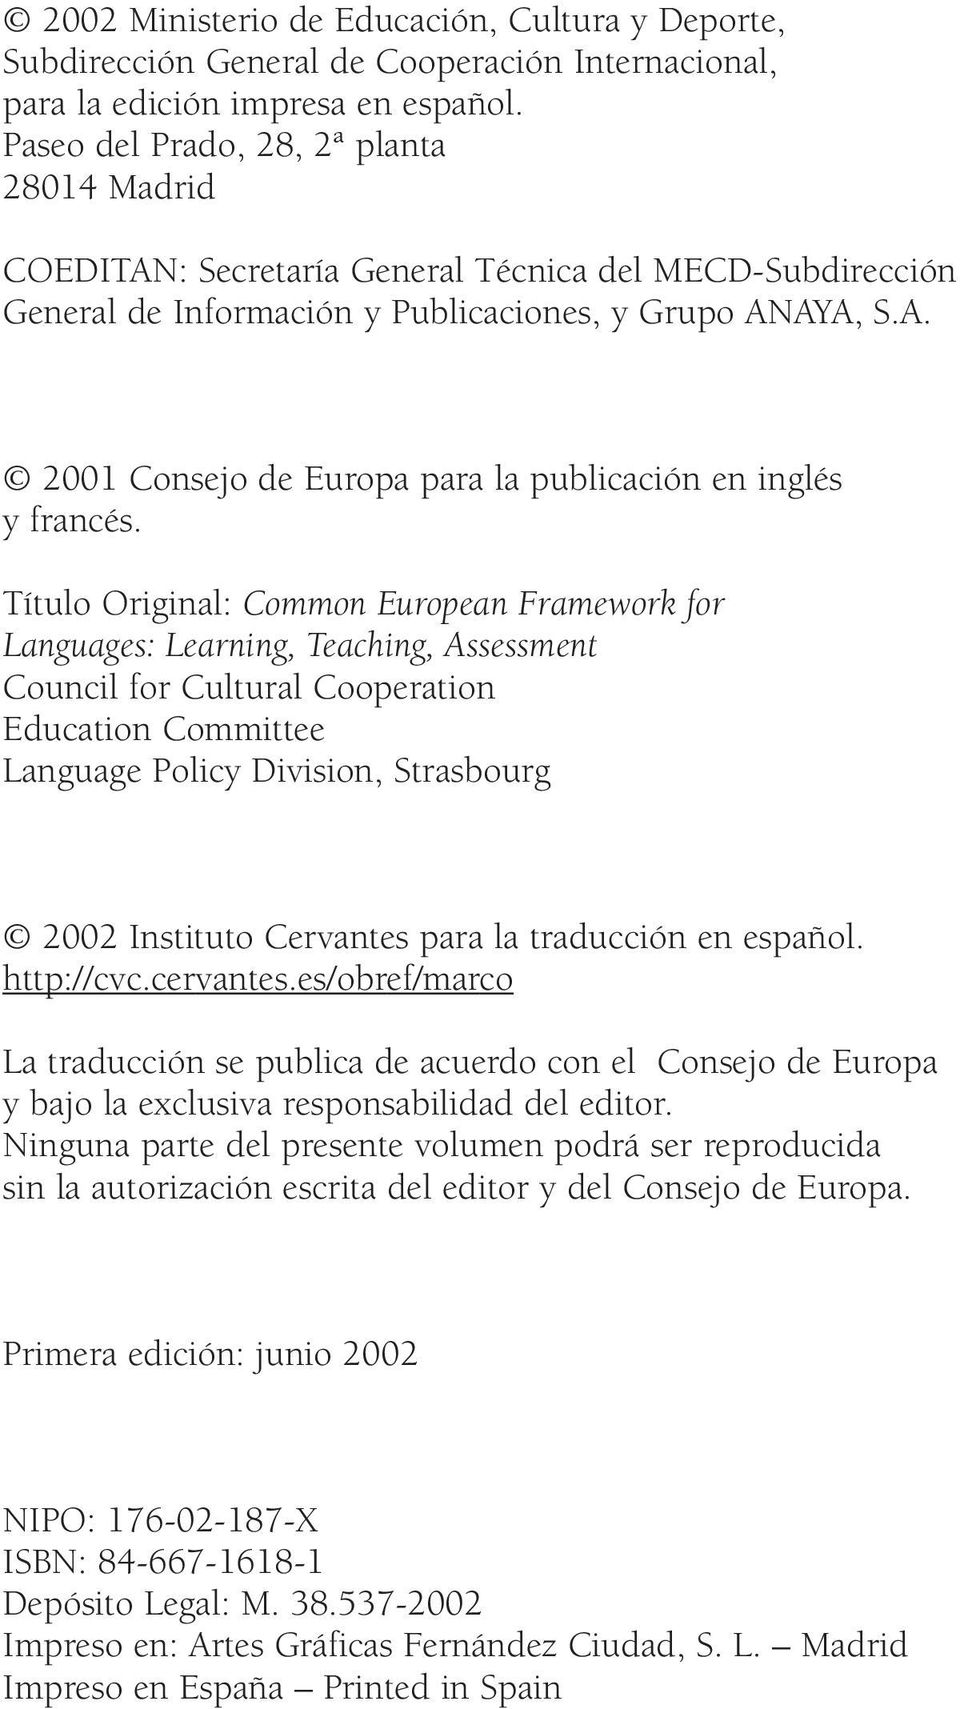 Título Original: Common European Framework for Languages: Learning, Teaching, Assessment Council for Cultural Cooperation Education Committee Language Policy Division, Strasbourg 2002 Instituto